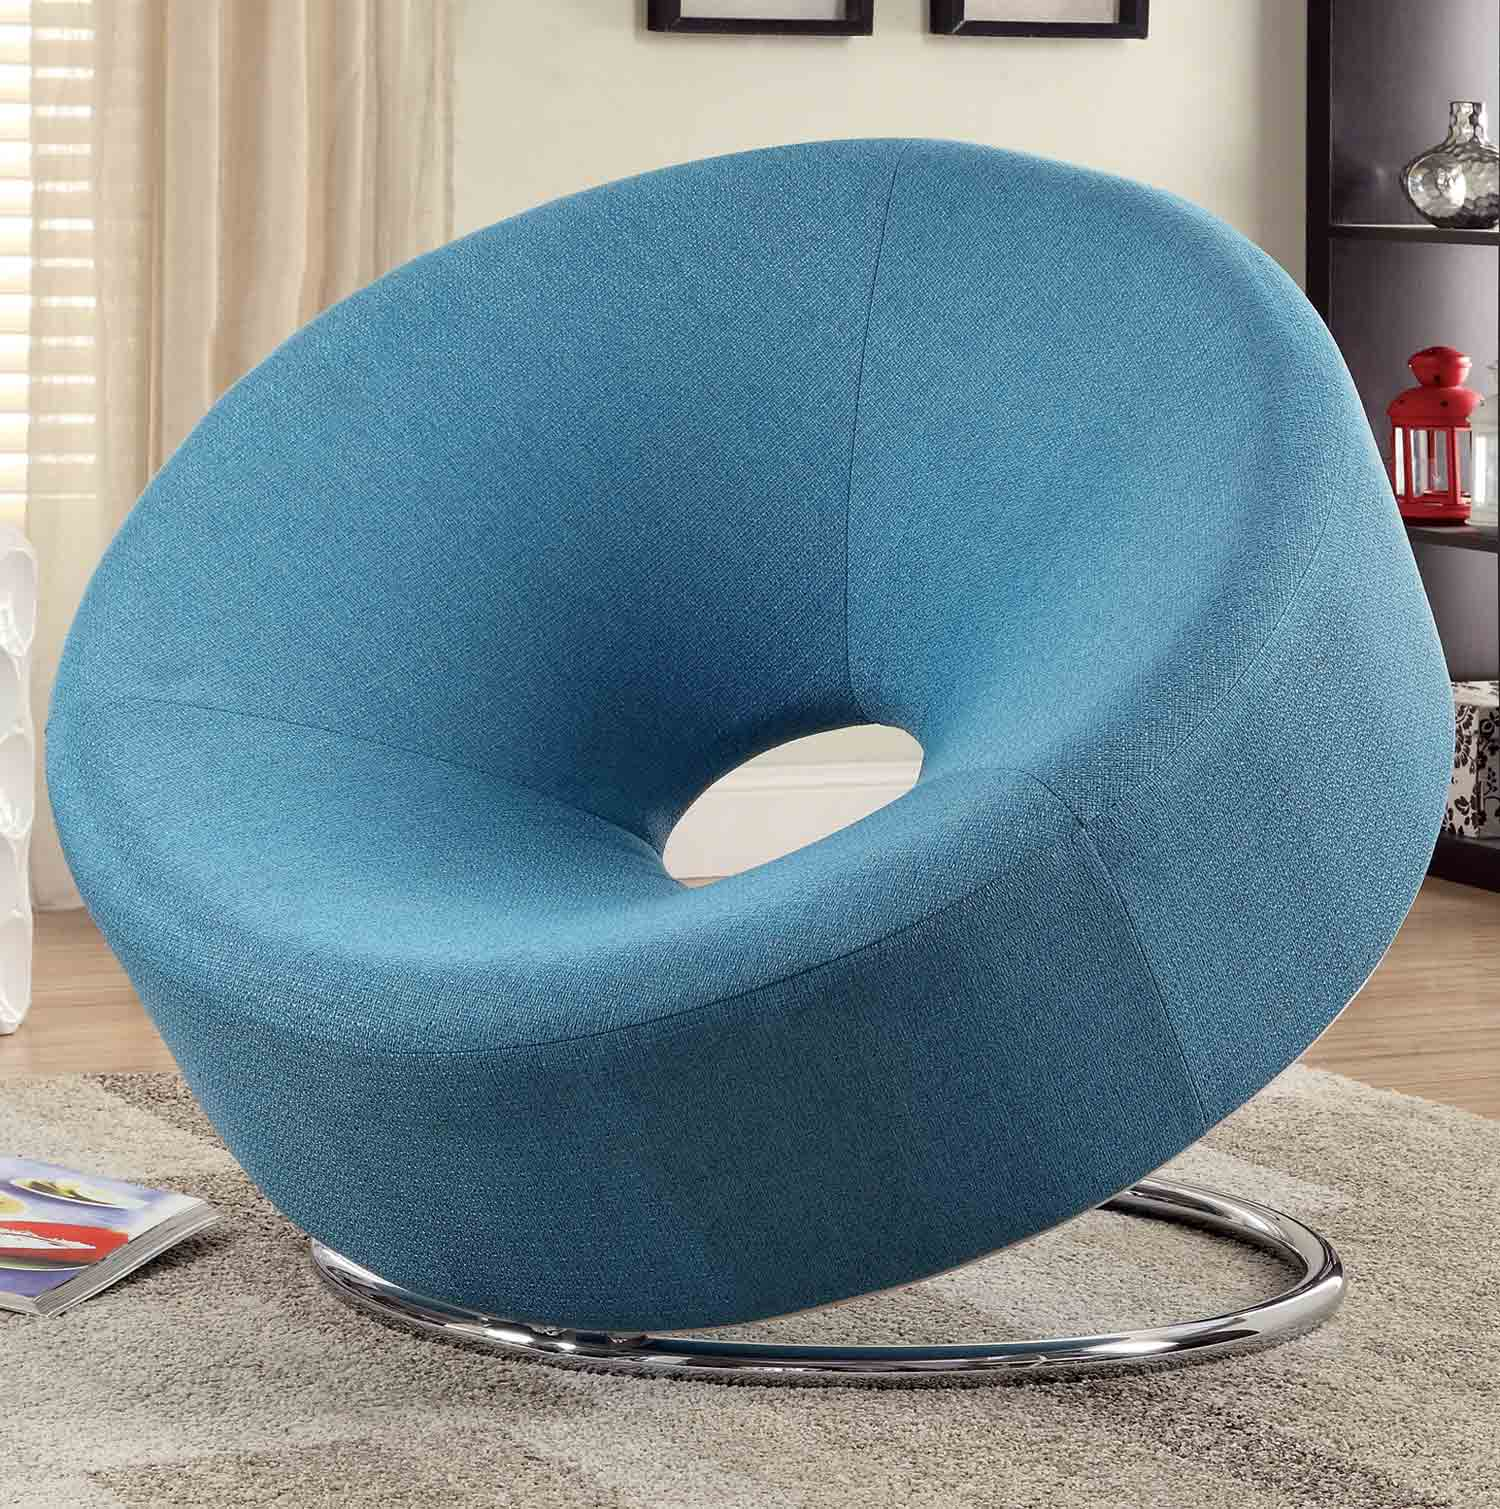 Coaster 902254 Accent Chair - Blue